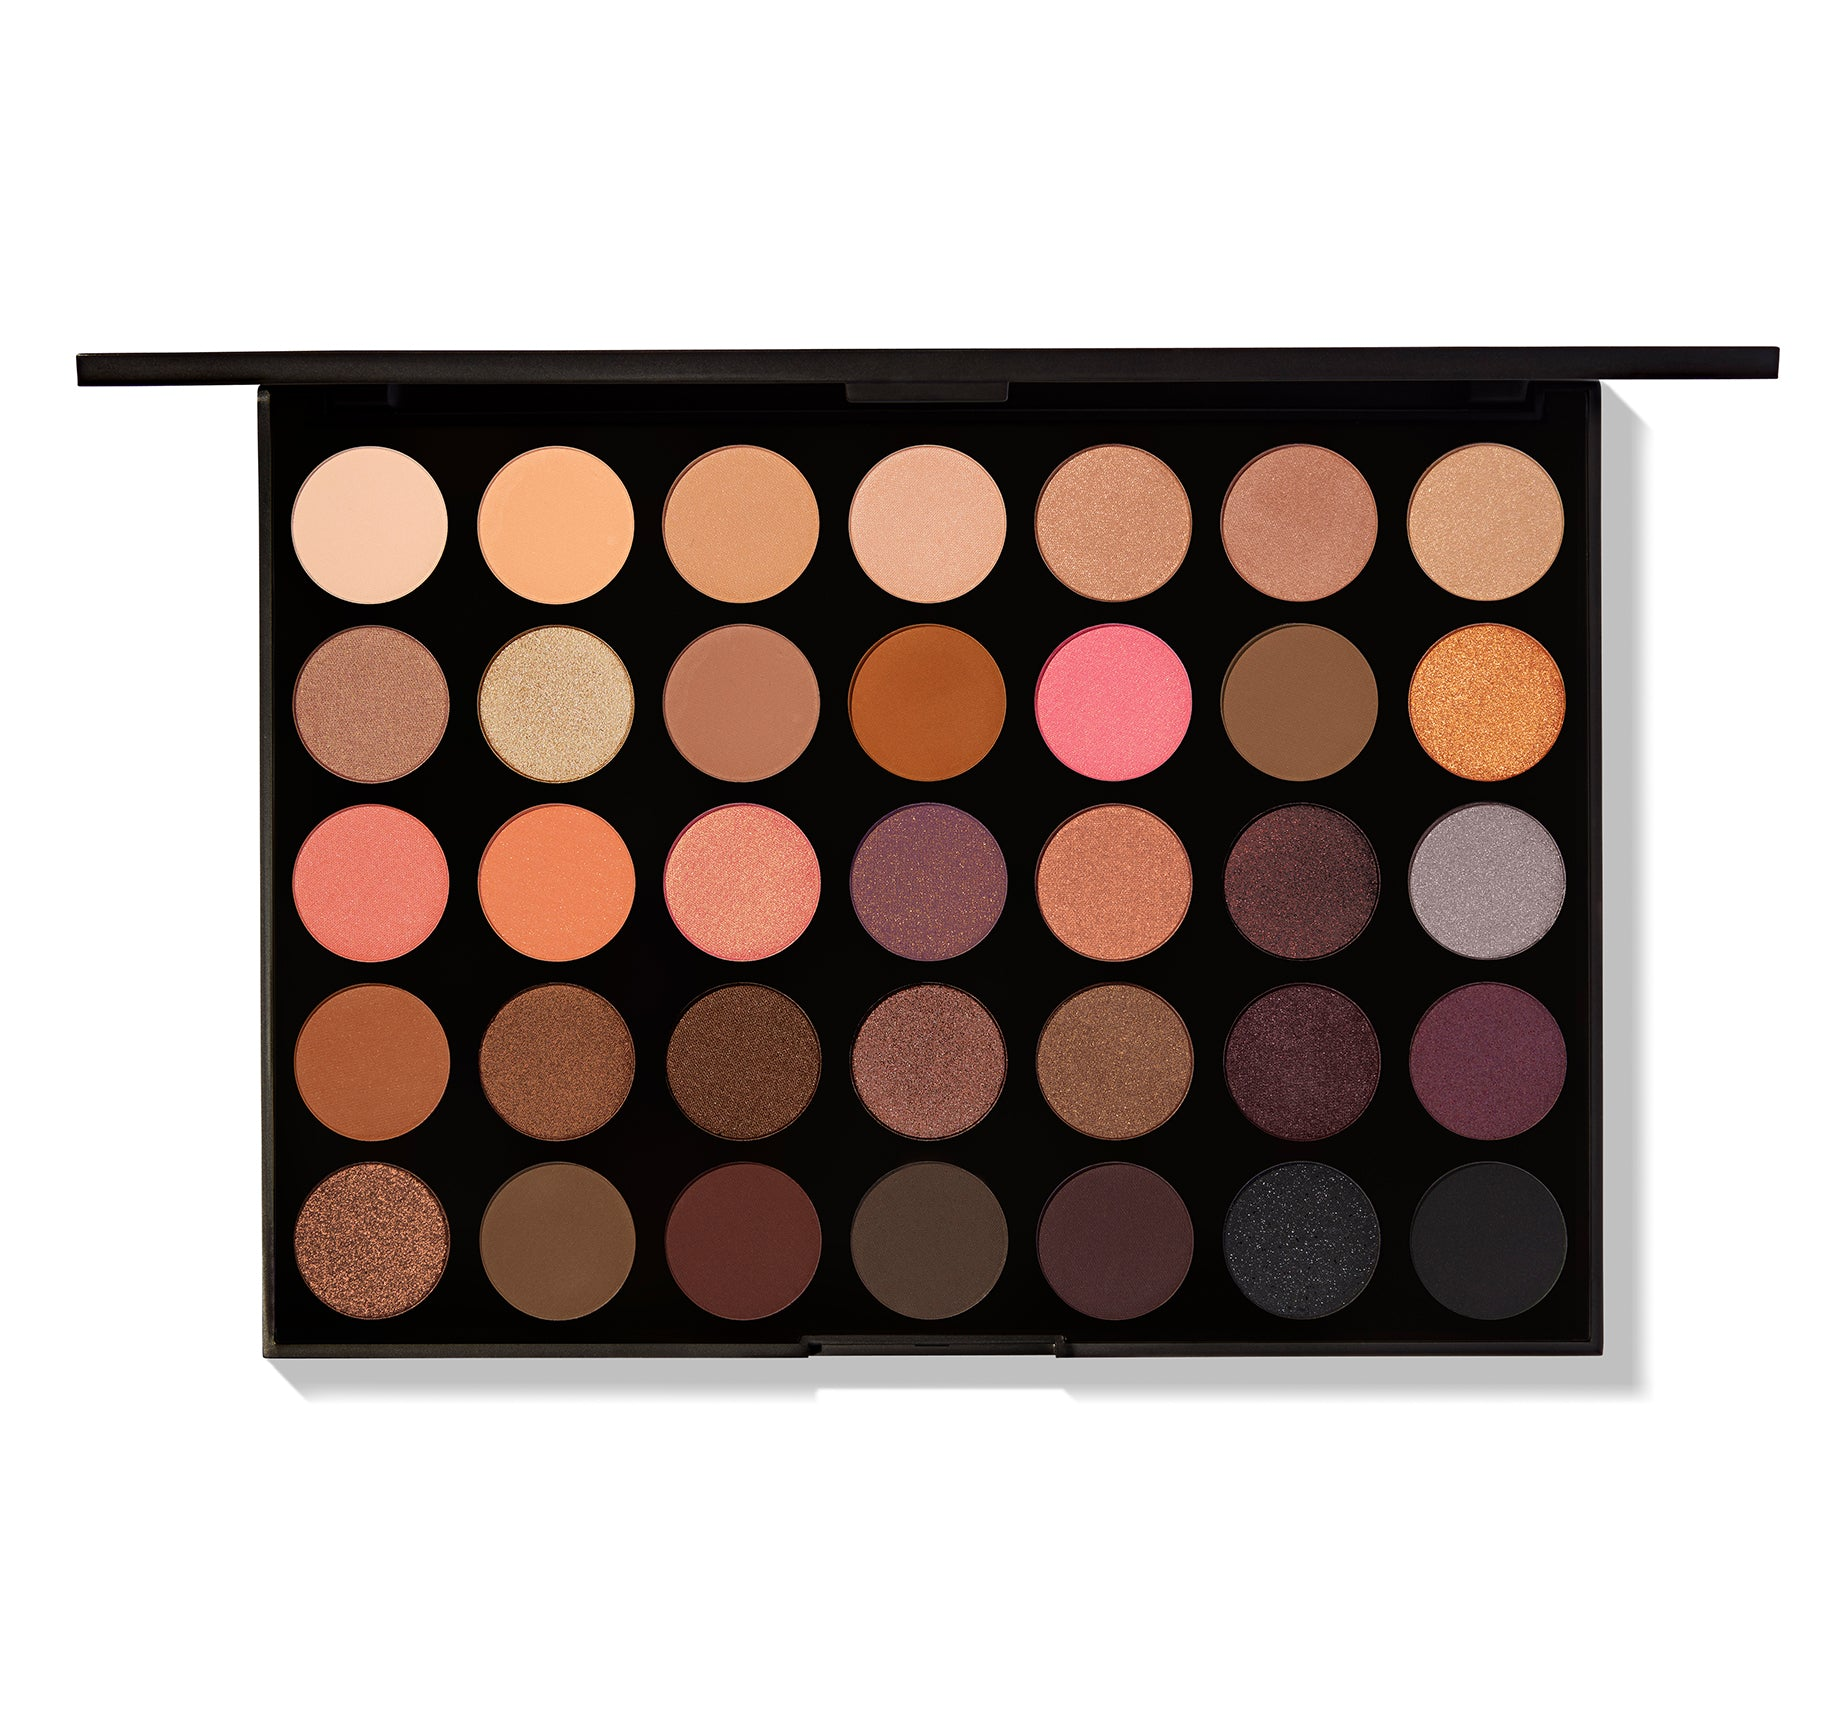 35W WARM IT UP ARTISTRY PALETTE